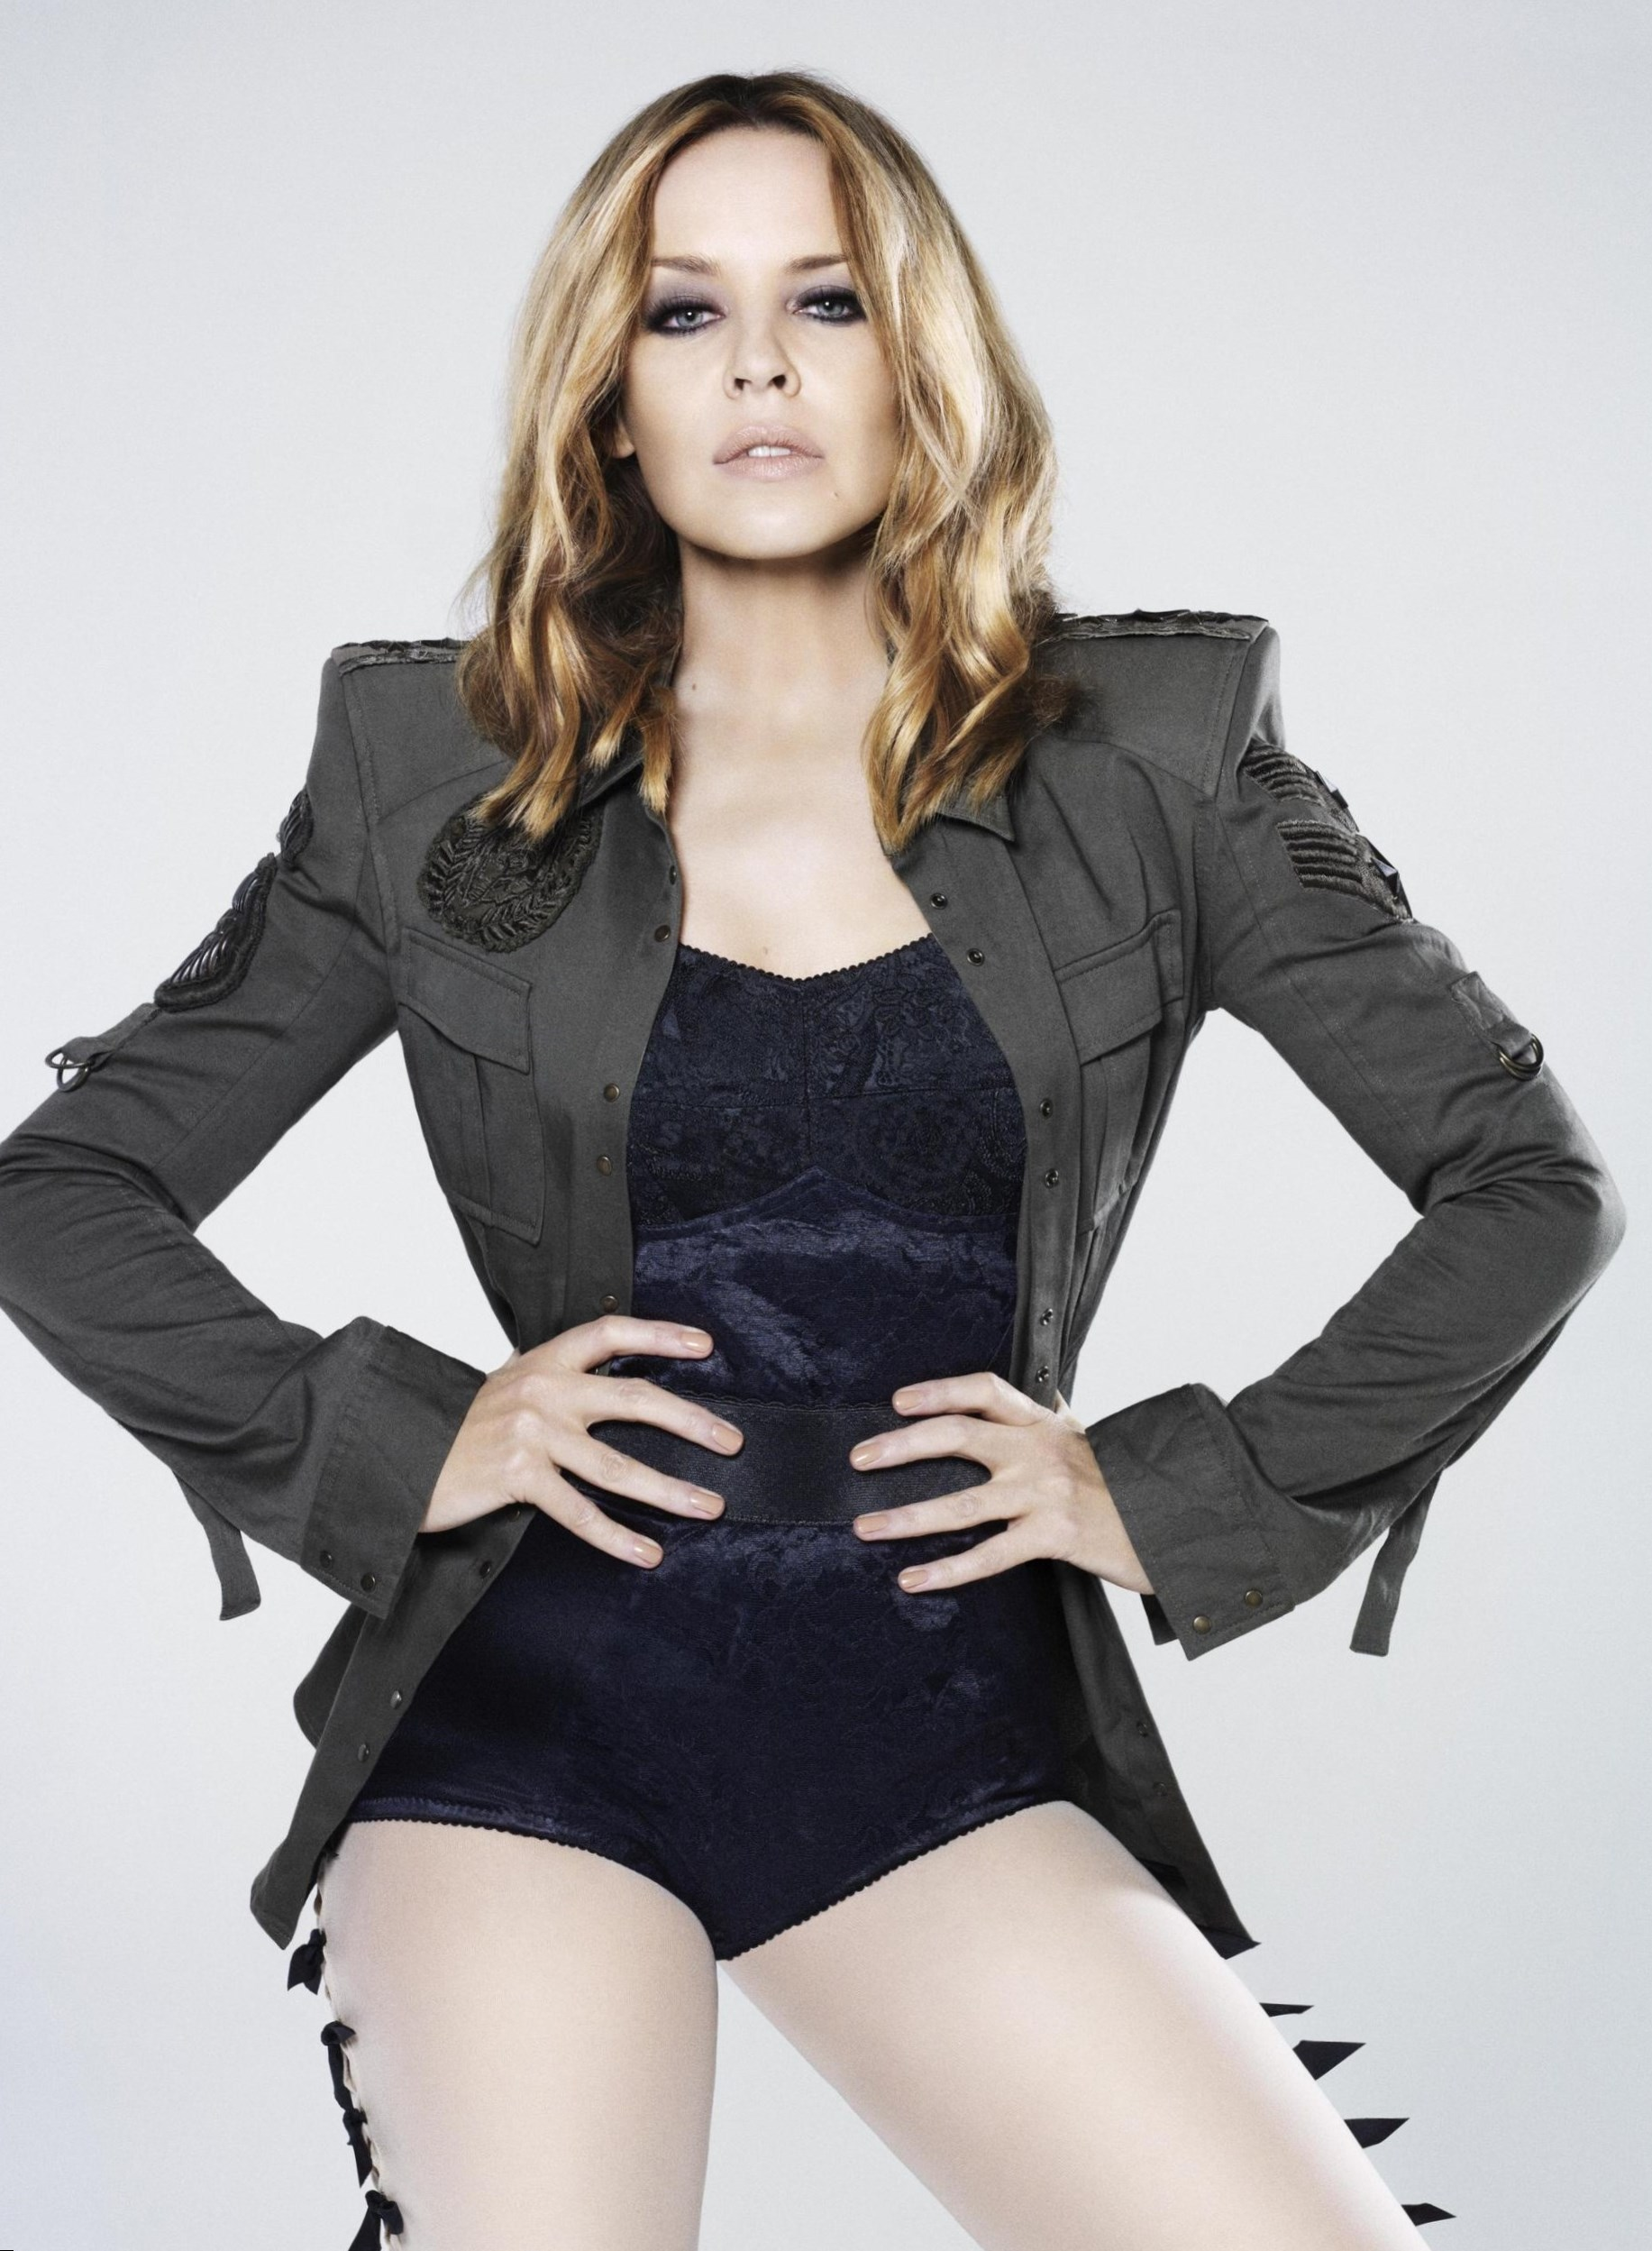 Kylie Minogue Weight, Height And Age. We Know It All